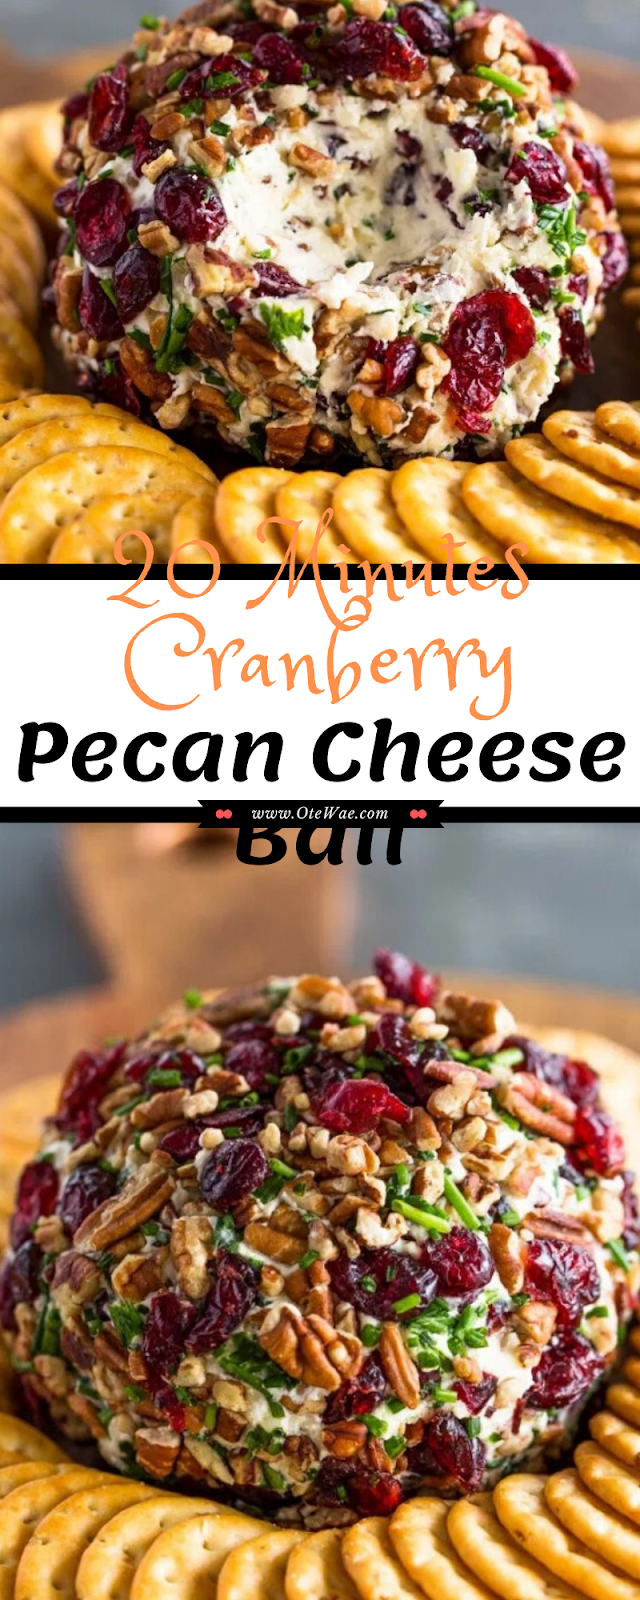 20 Minutes Cranberry Pecan Cheese Ball